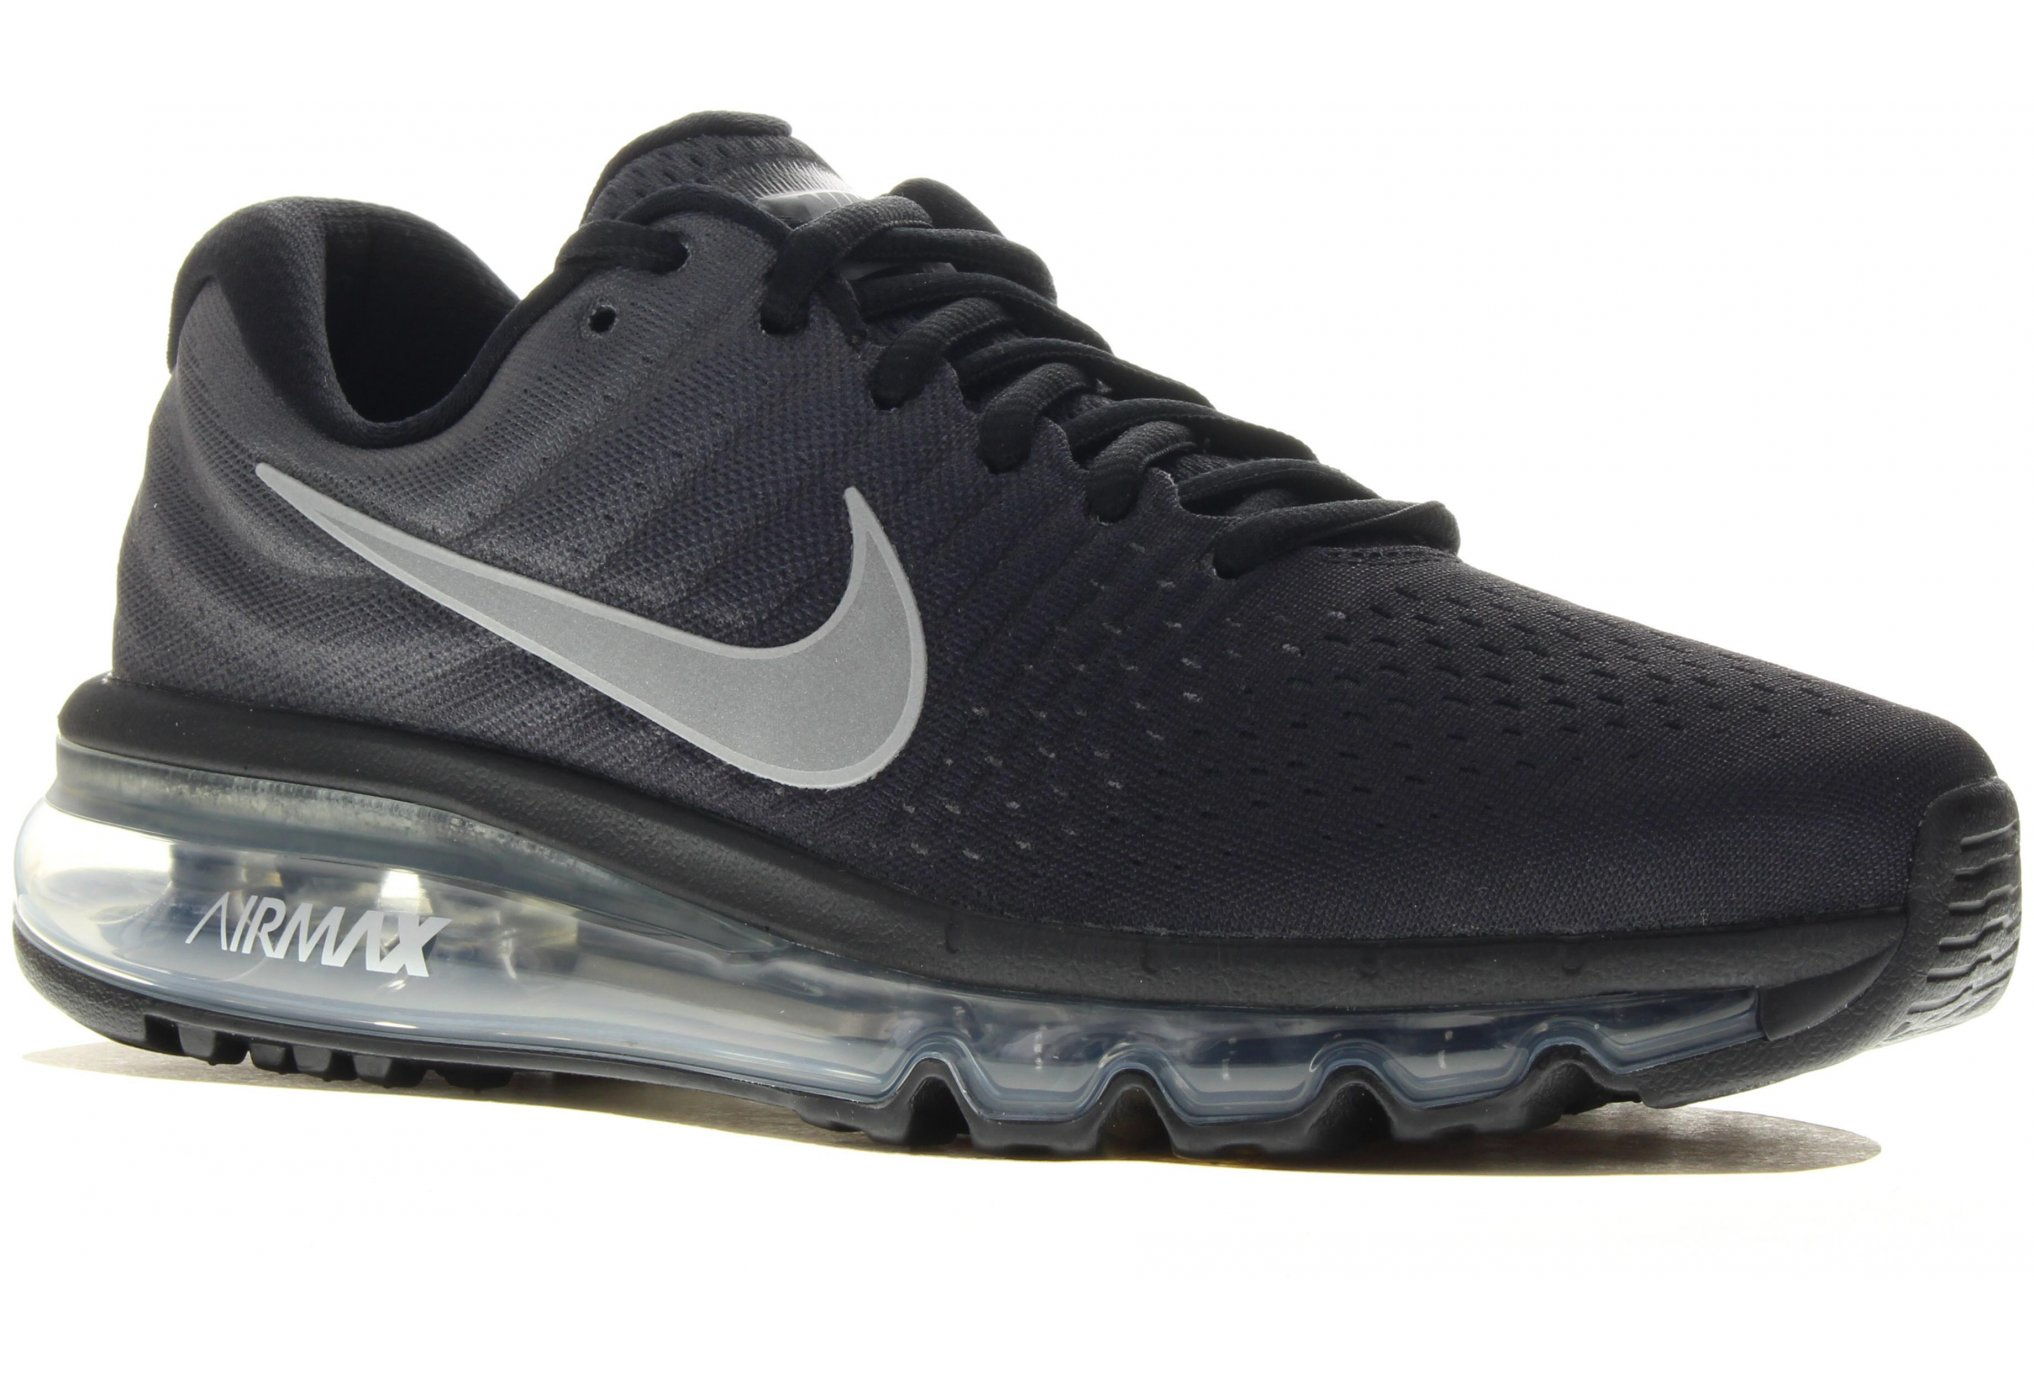 2017 Homme Running Pas Chaussures Cher Gs Zdxn7wo Max Nike Air qPUWFAOO